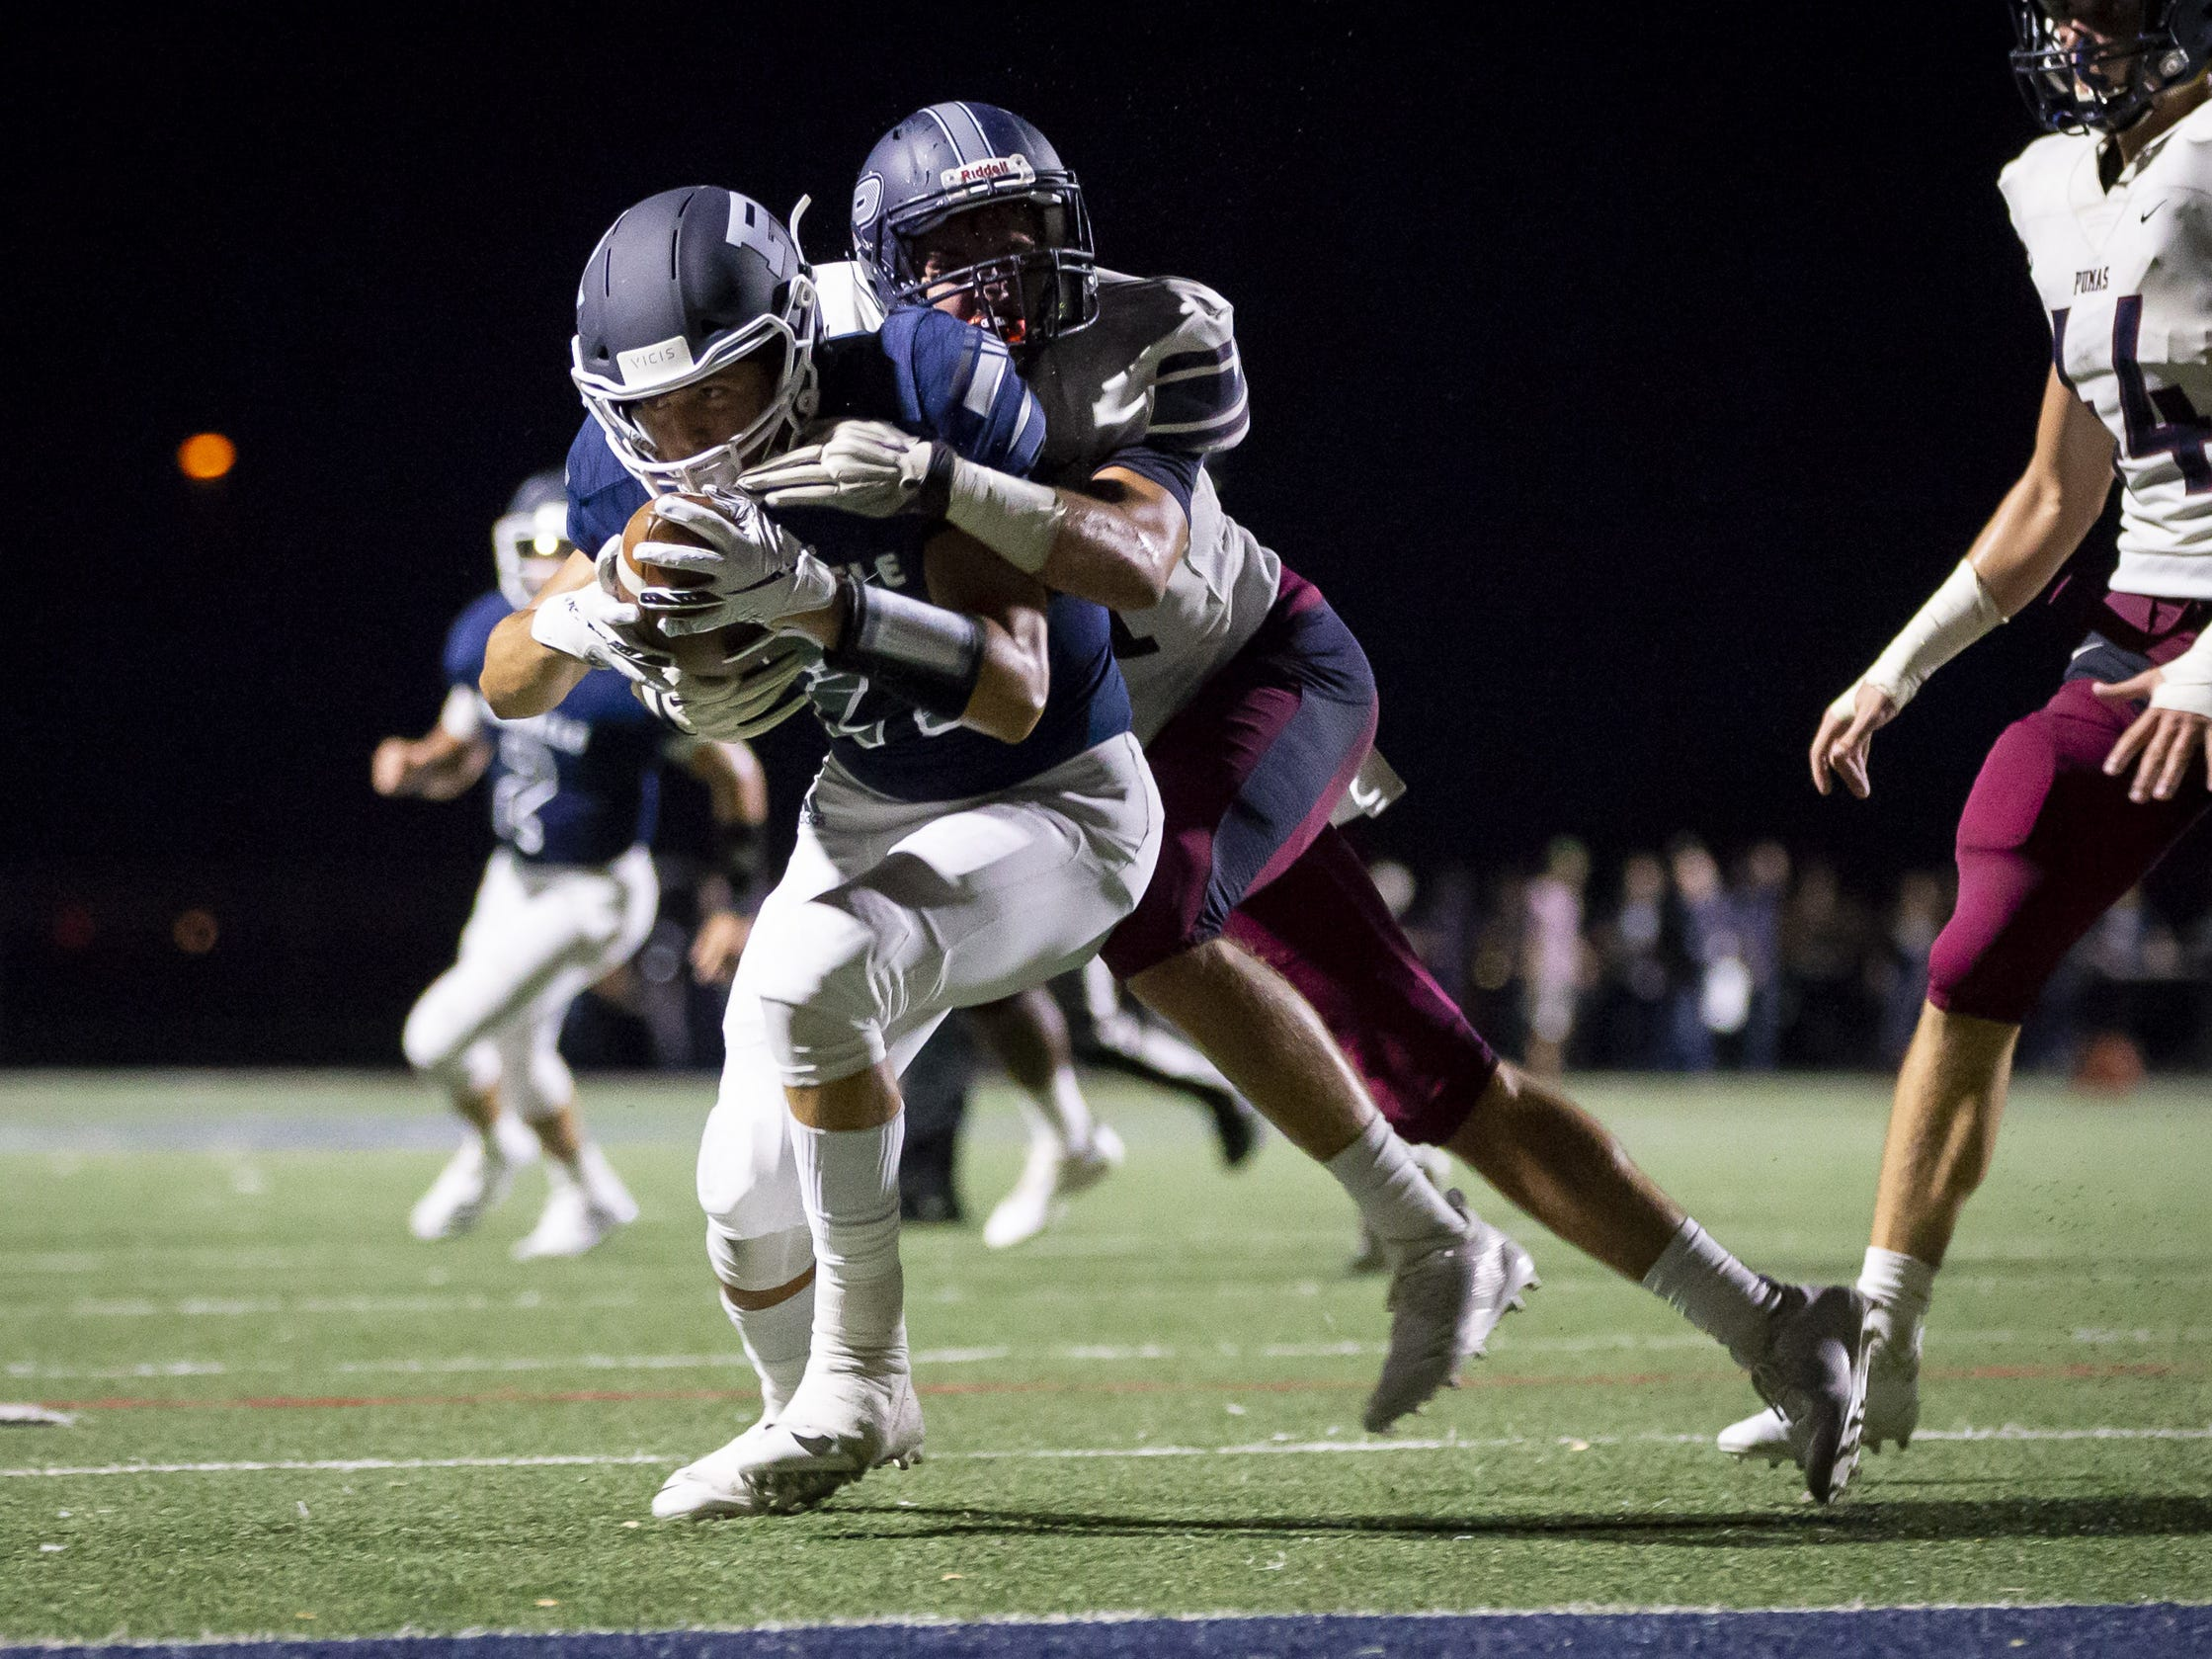 Wide receiver Jacob Brady (21) of the Pinnacle Pioneers is tackled by strong safety Kellen Simmons (31) of the Perry Pumas at Pinnacle High School on Friday, August 17, 2018 in Phoenix, Arizona.